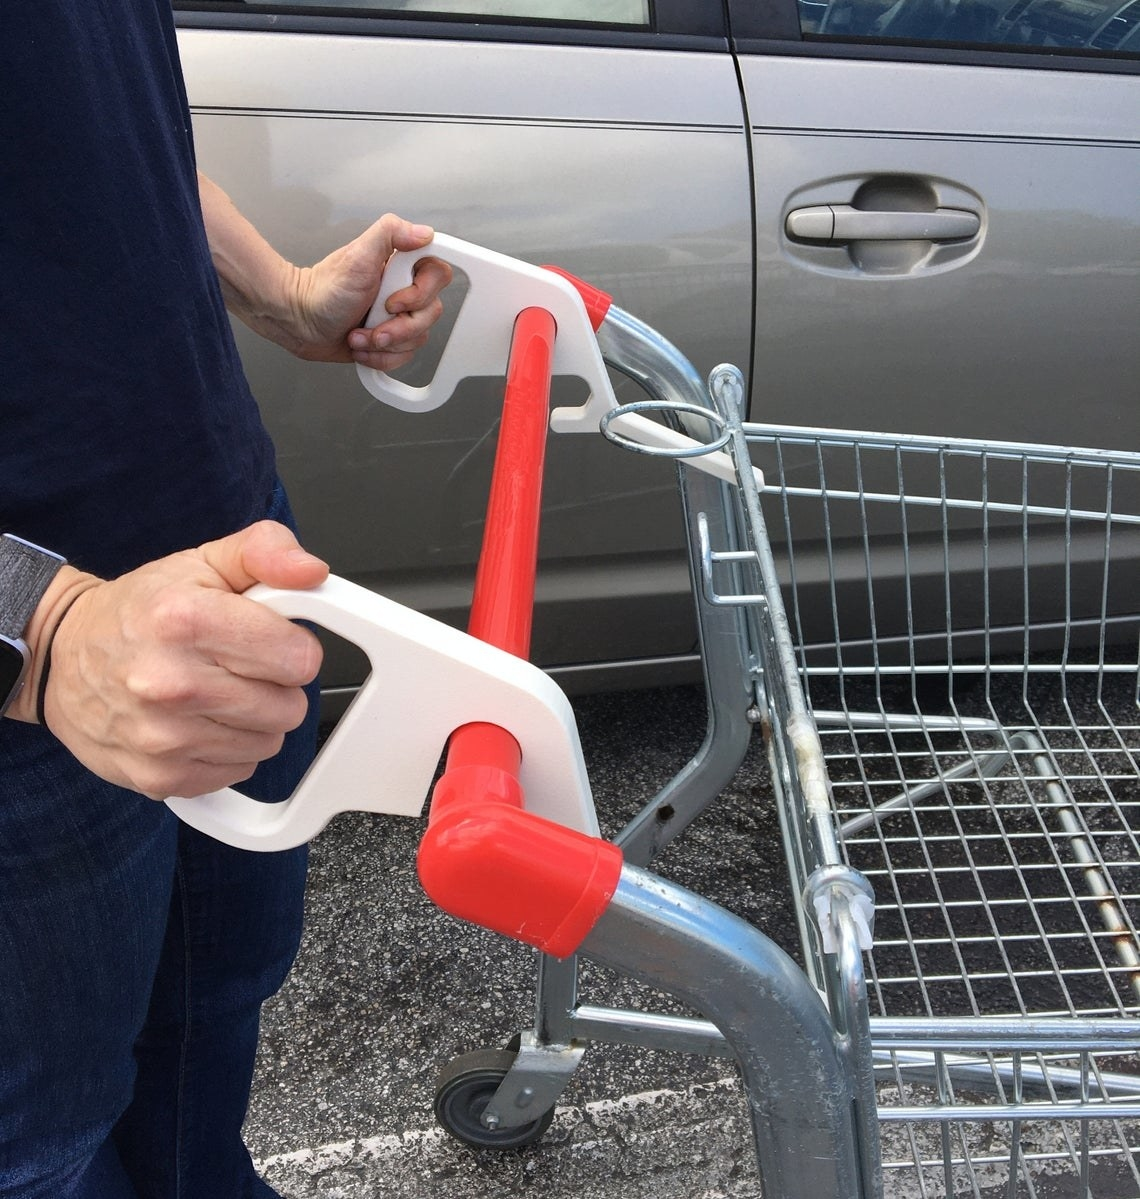 Two white handles that hook onto a shopping cart